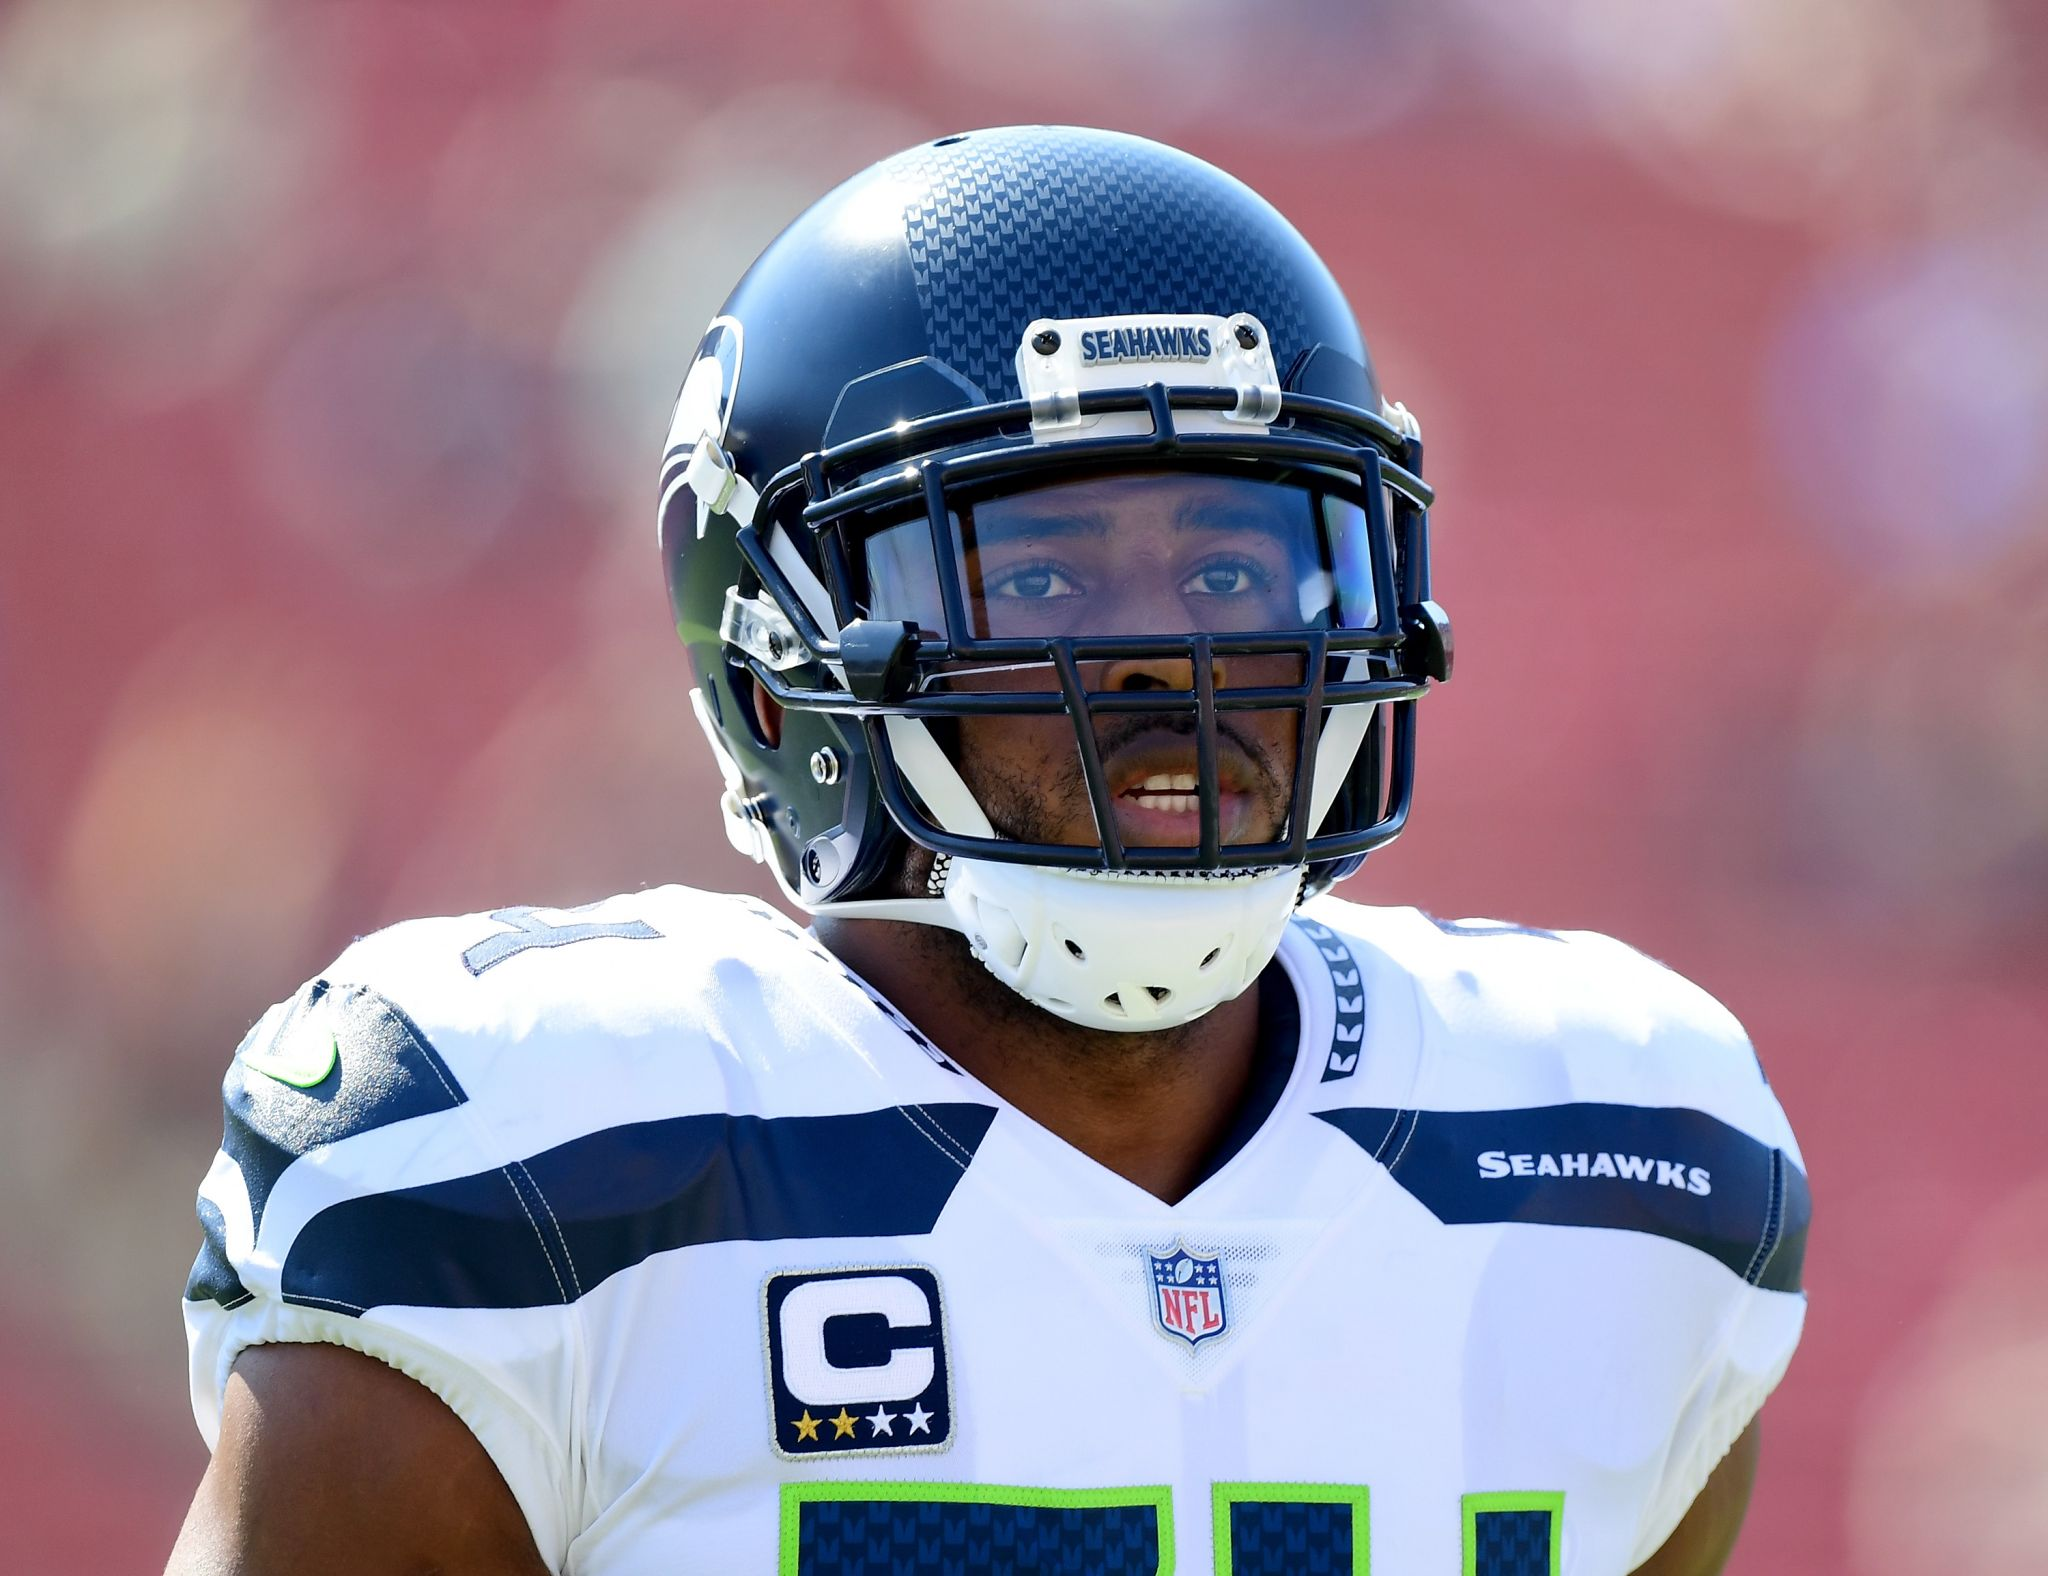 Seahawks 39 bobby wagner will play sunday for Afghan cuisine renton